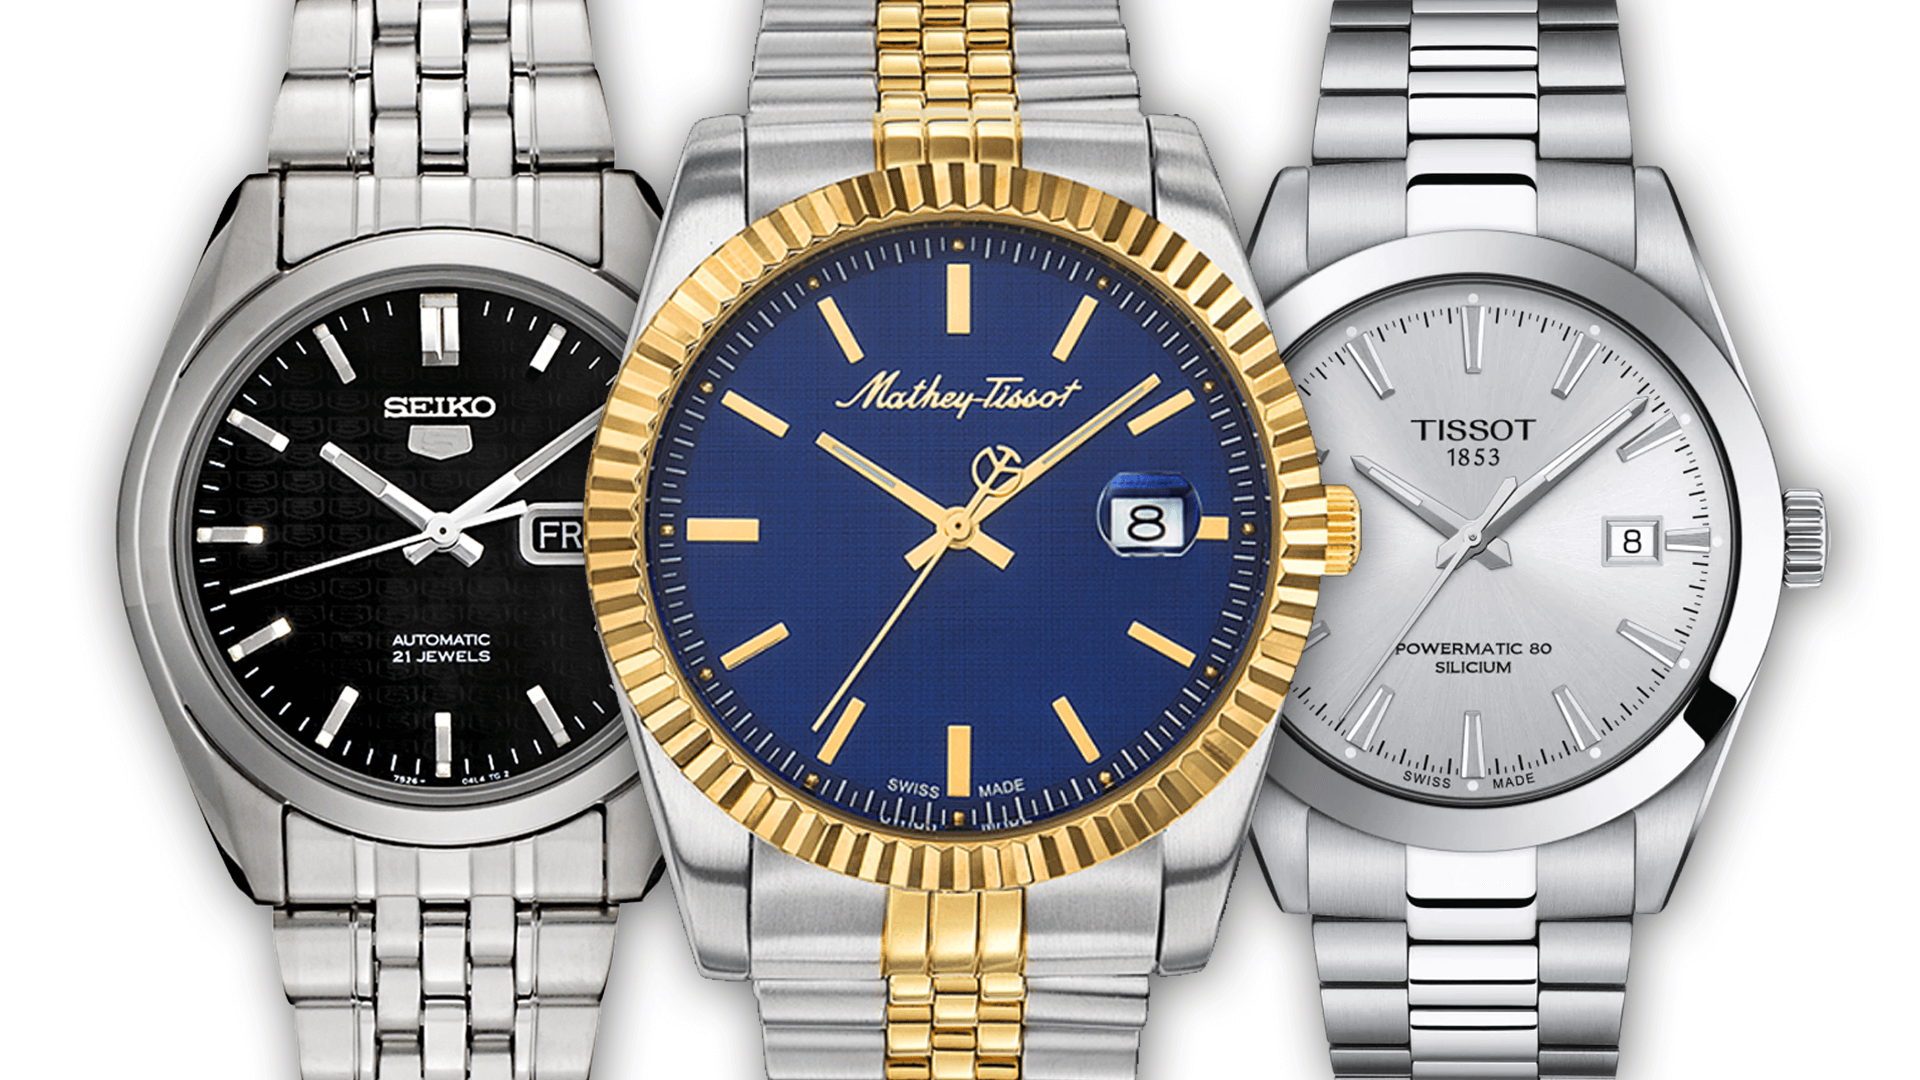 12 Rolex Datejust Alternatives Great Homage Watches You Can Actually Afford Ben S Watch Club Exploring Affordable Watches